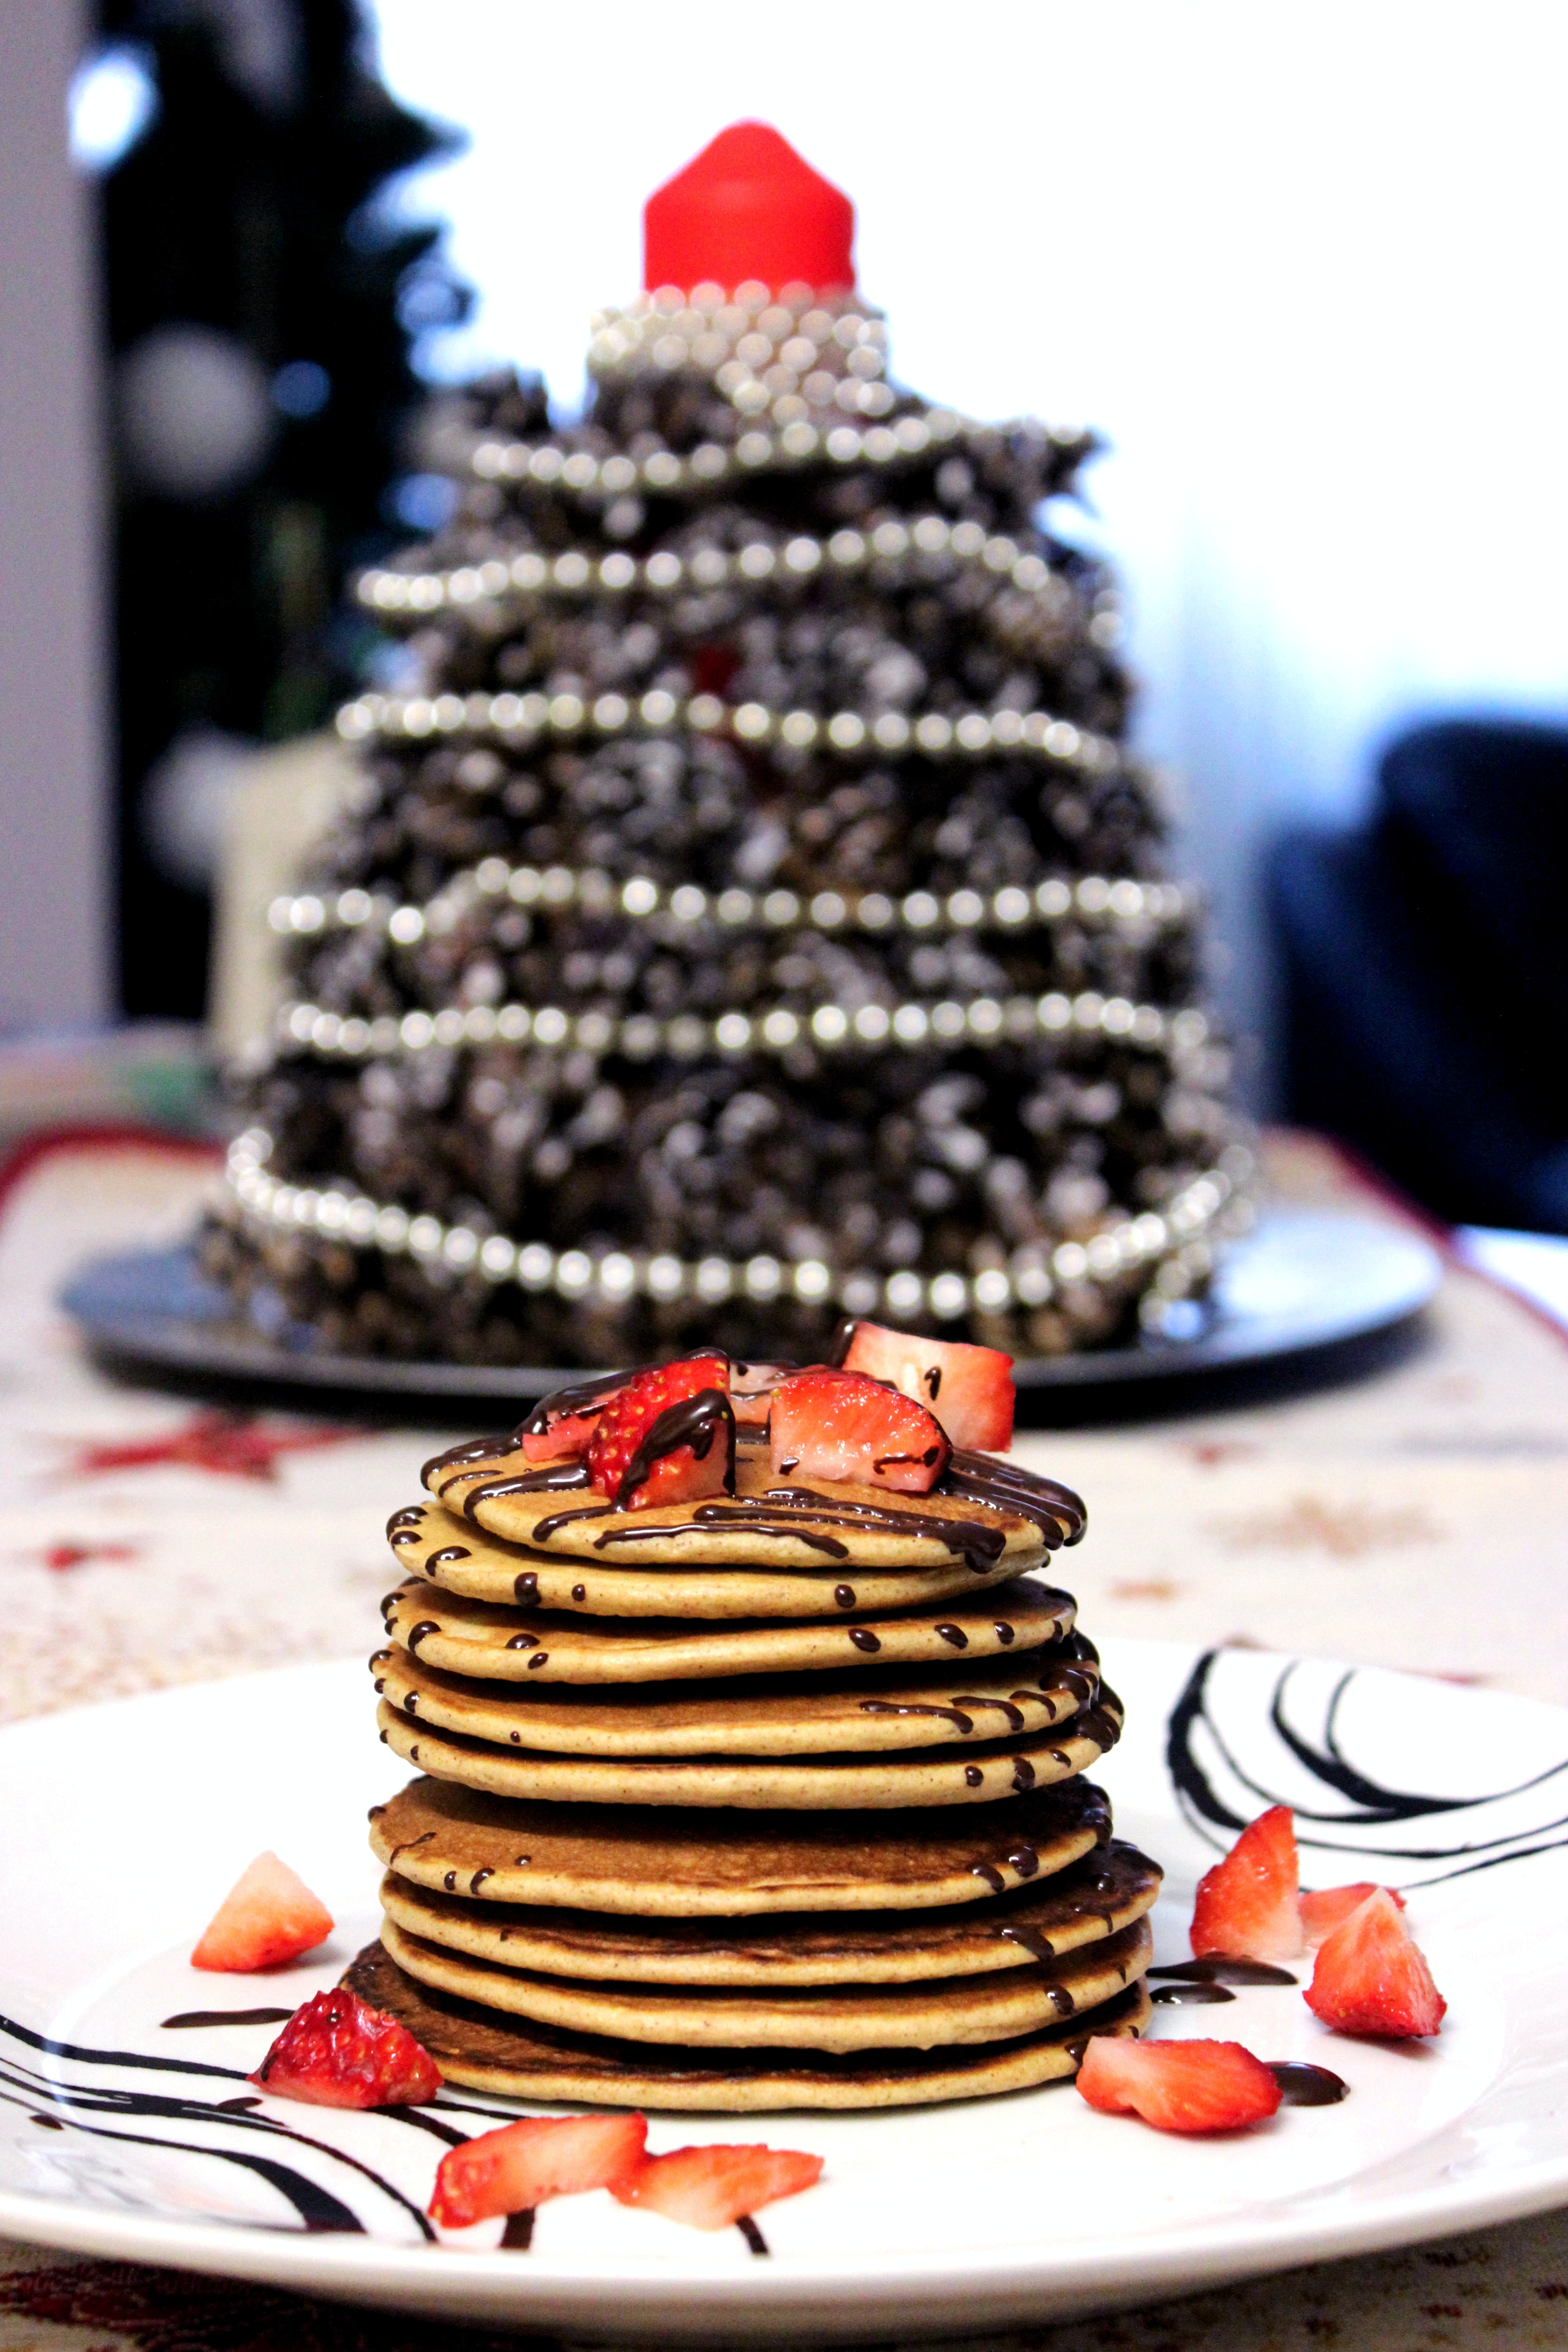 pancakes with chocolate syrup and strawberry toppings